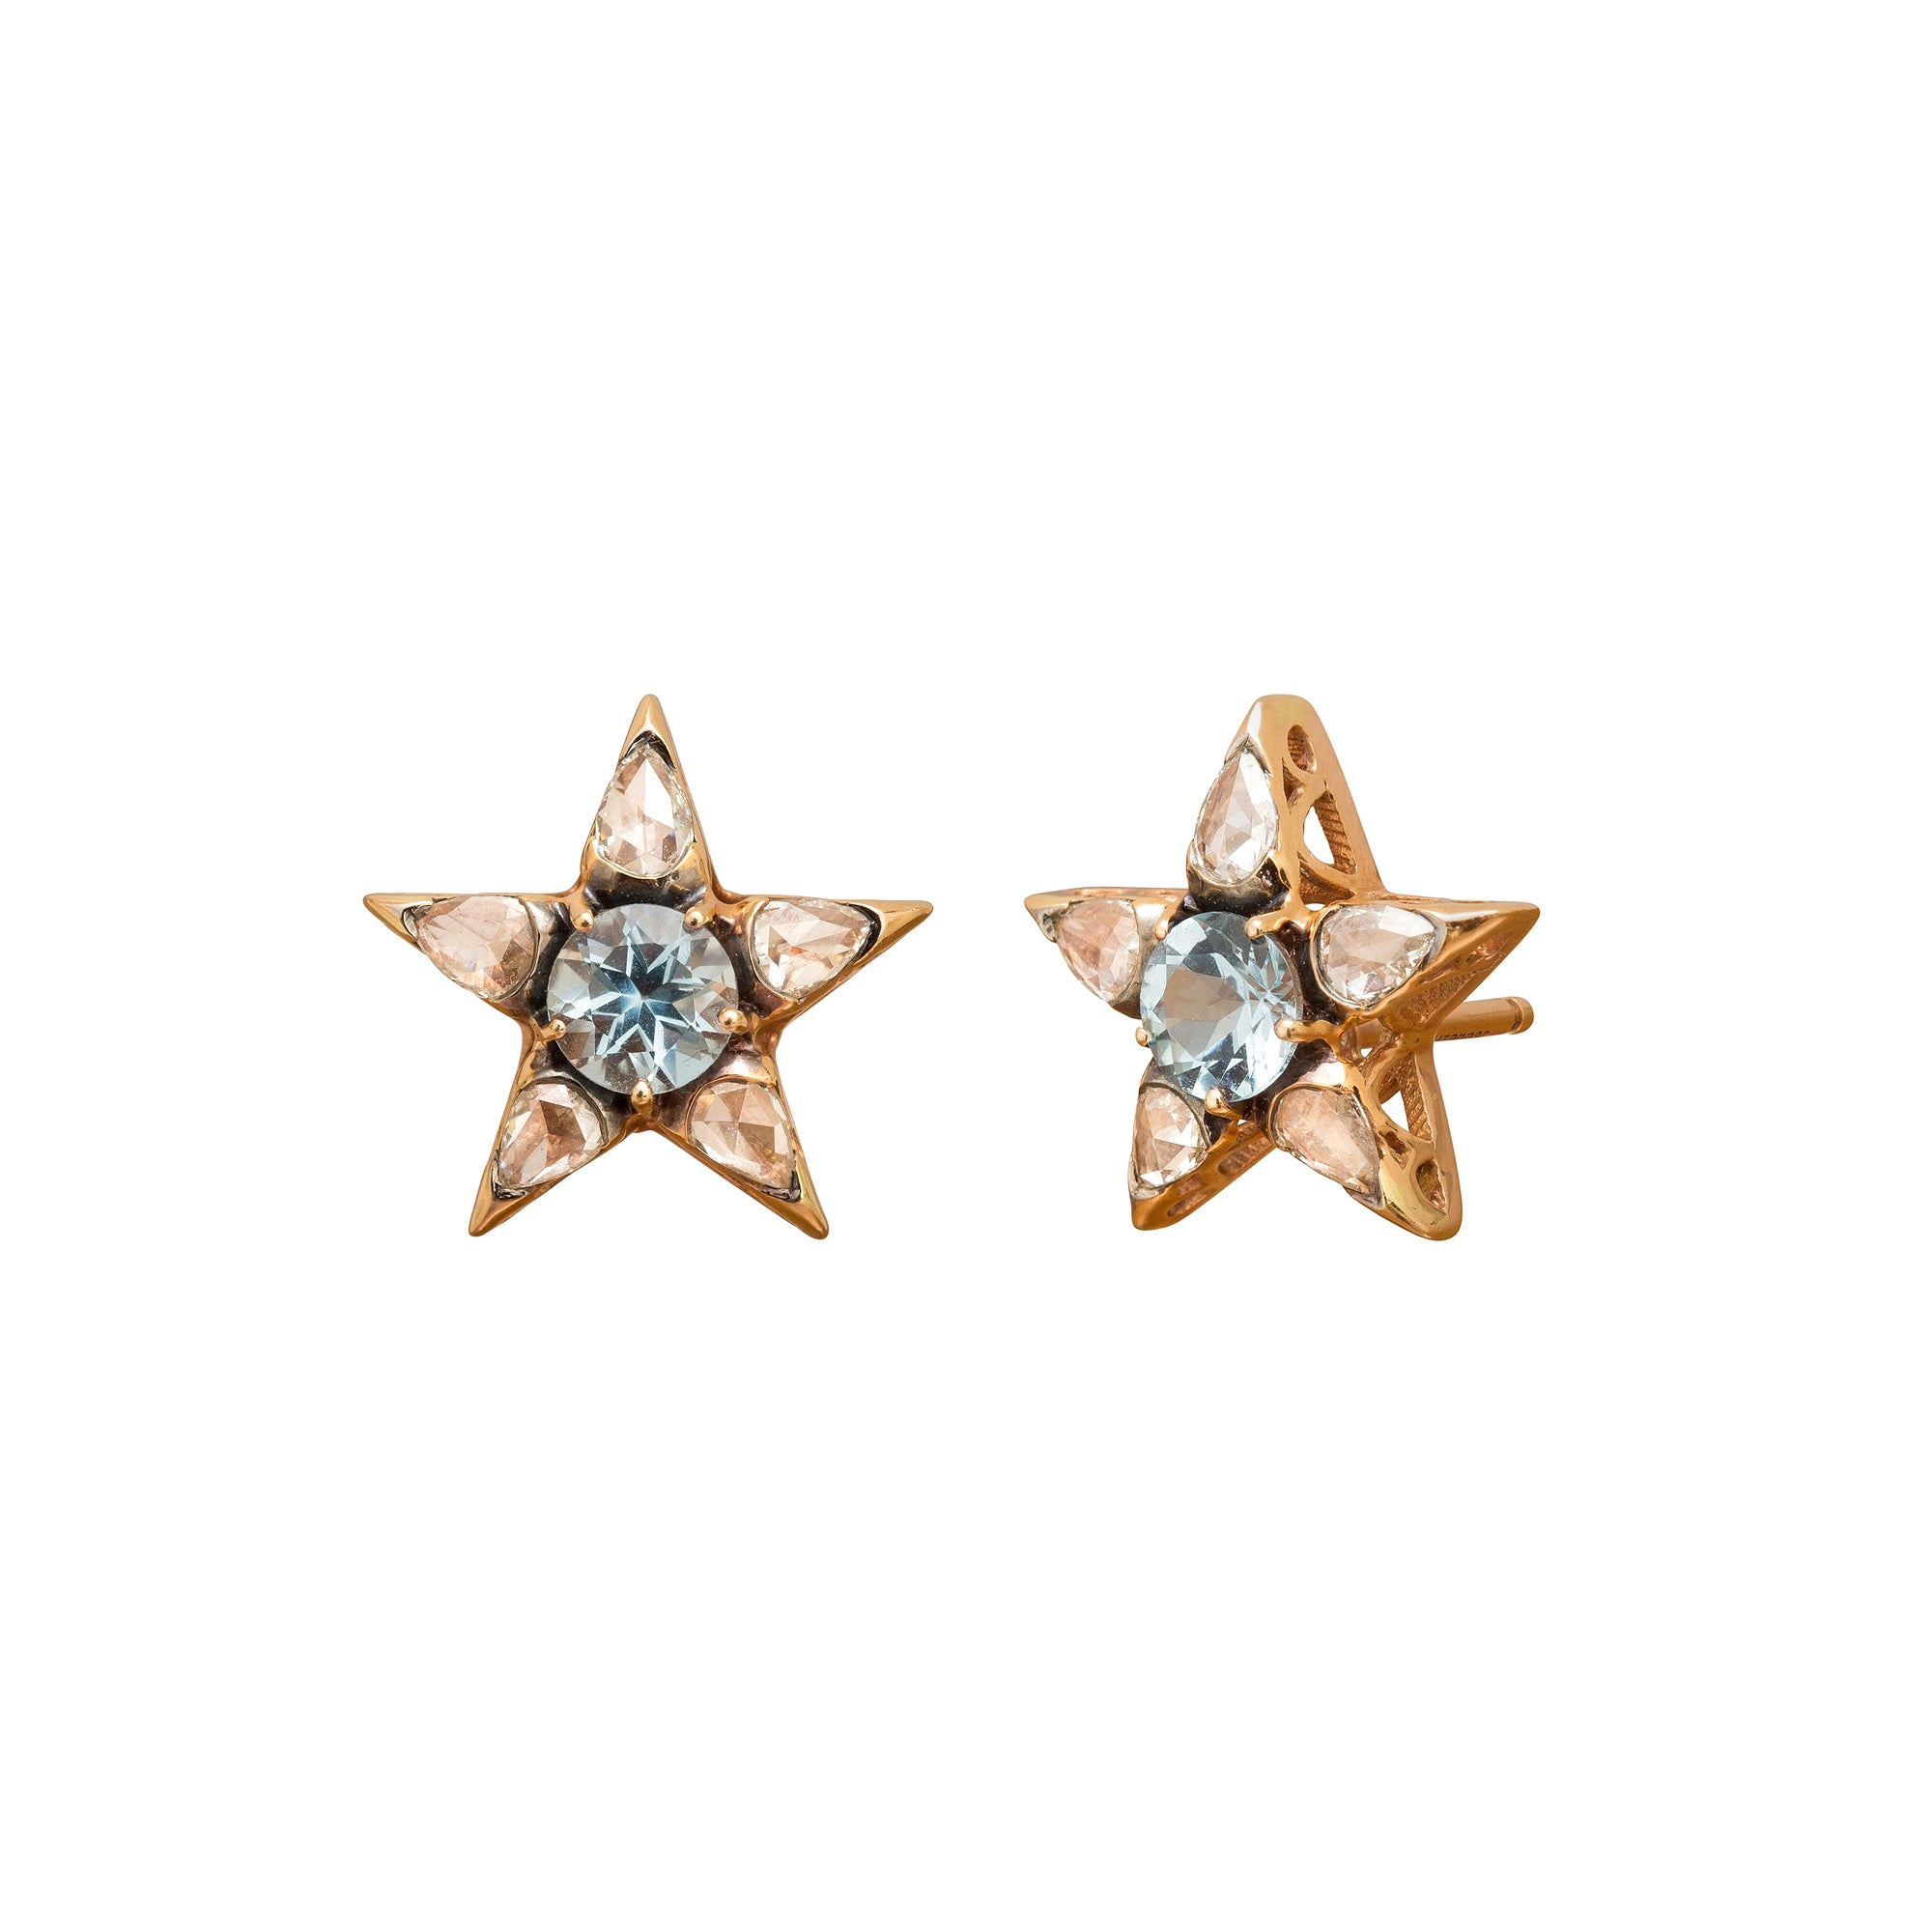 Istanbul Aquamarine Star Earrings by Selim Mouzannar for Broken English Jewelry